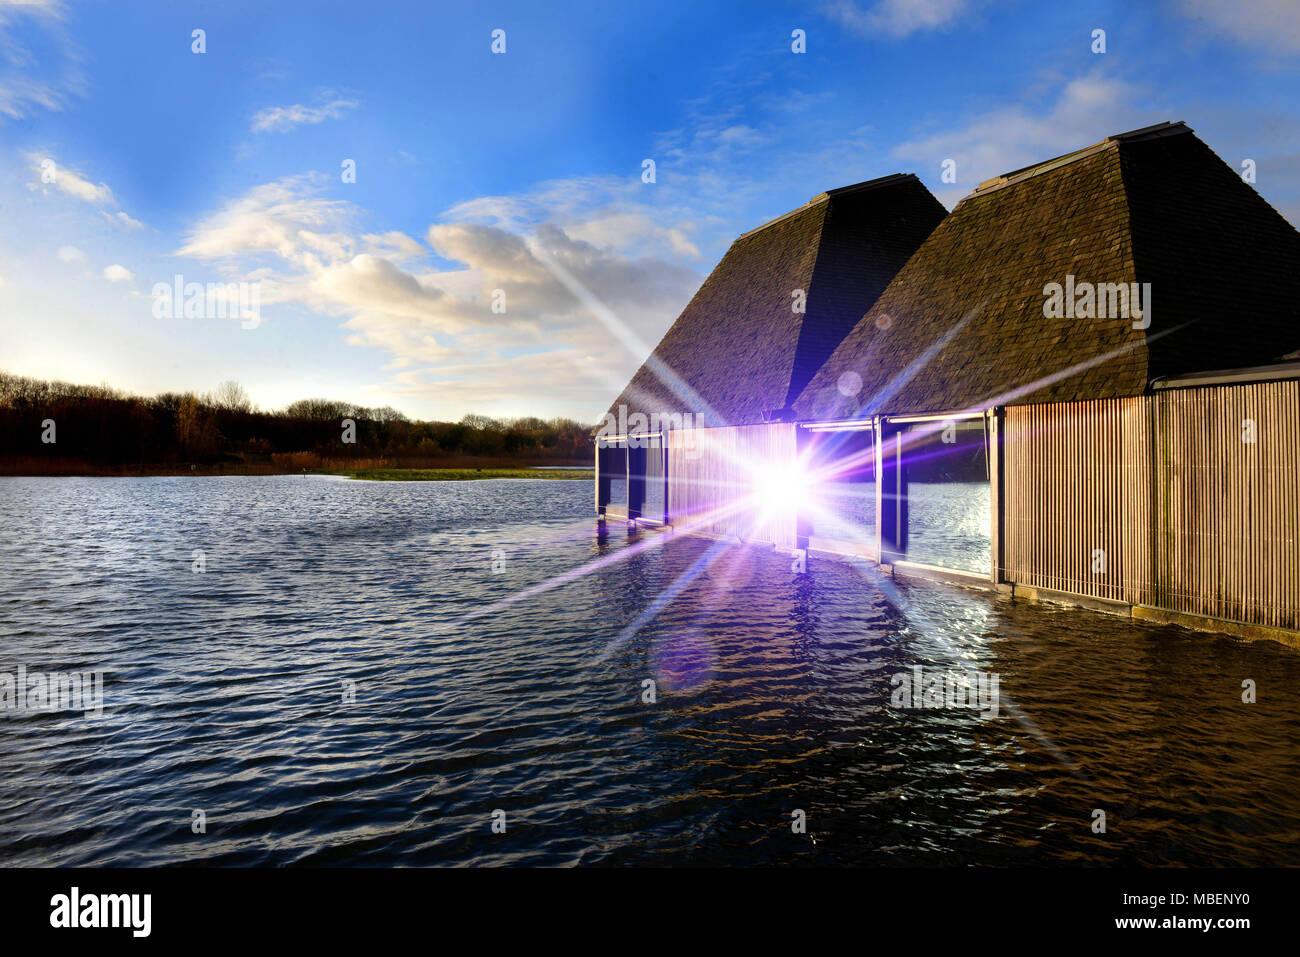 Brockholes, Wetland and woodland nature reserve, home to rare bird species, with a floating visitor village, Preston New Road, Preston PR5 0A - Stock Image